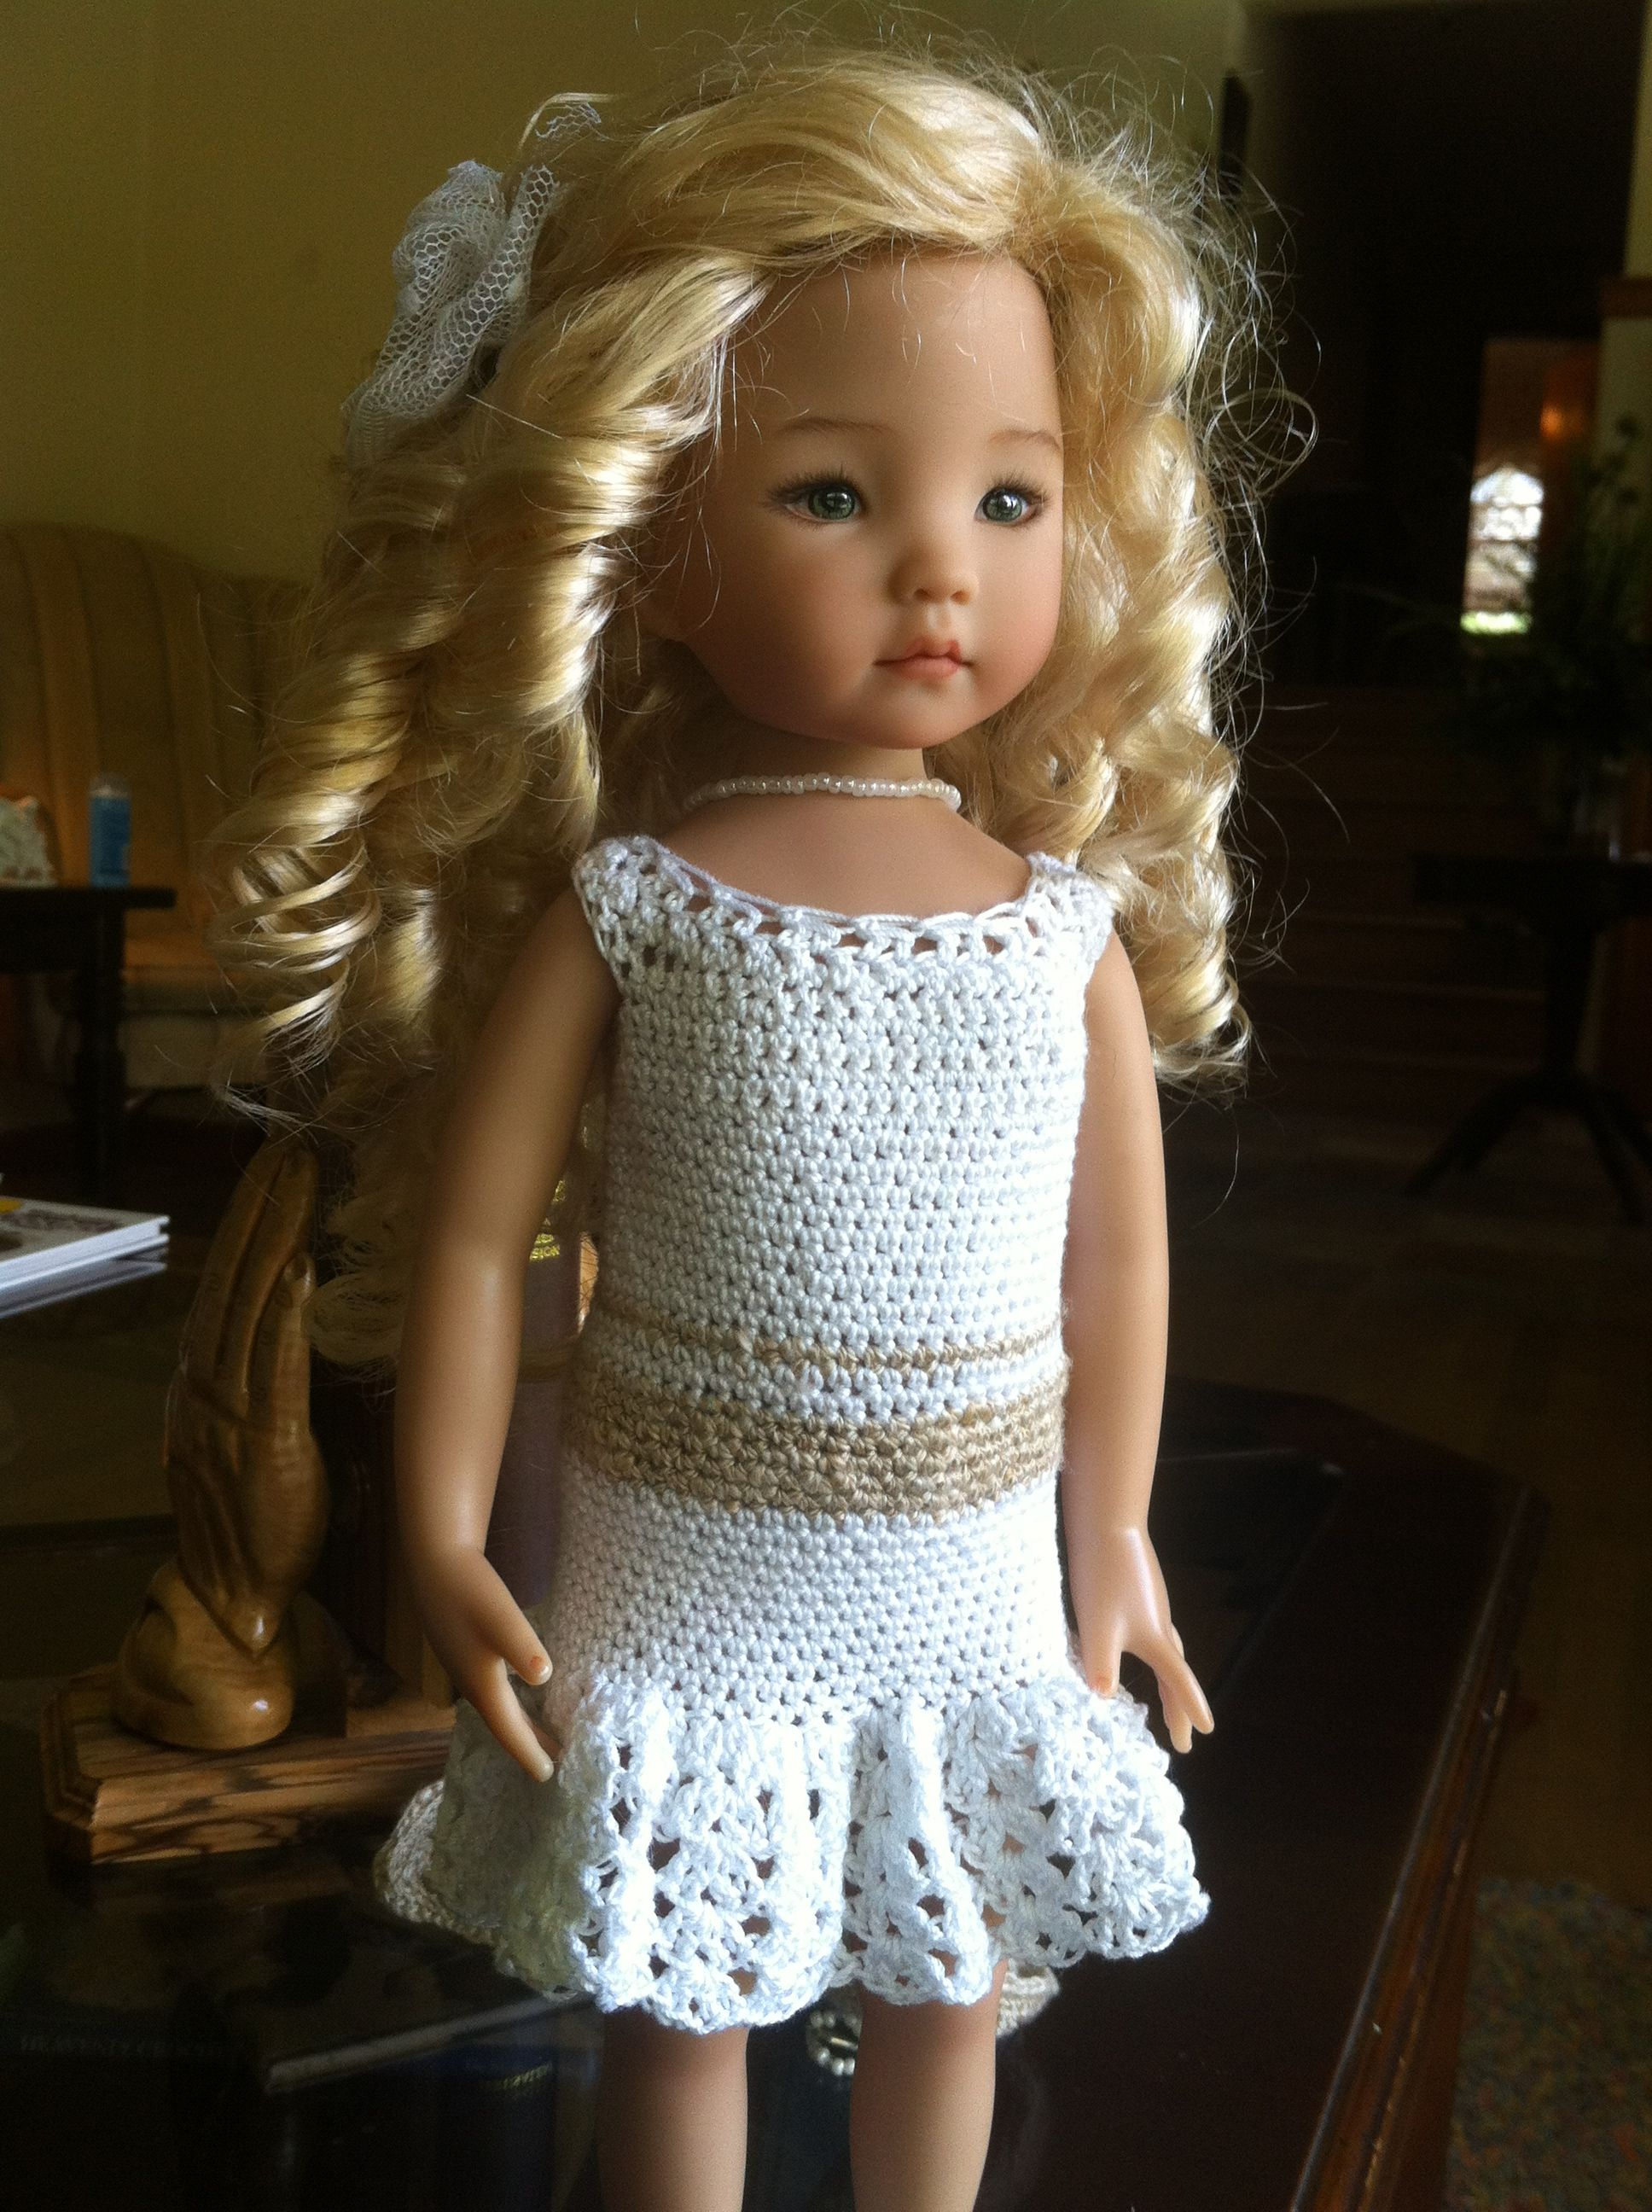 This is the dress without the jacket that I crocheted for my mom for Mother's Day.